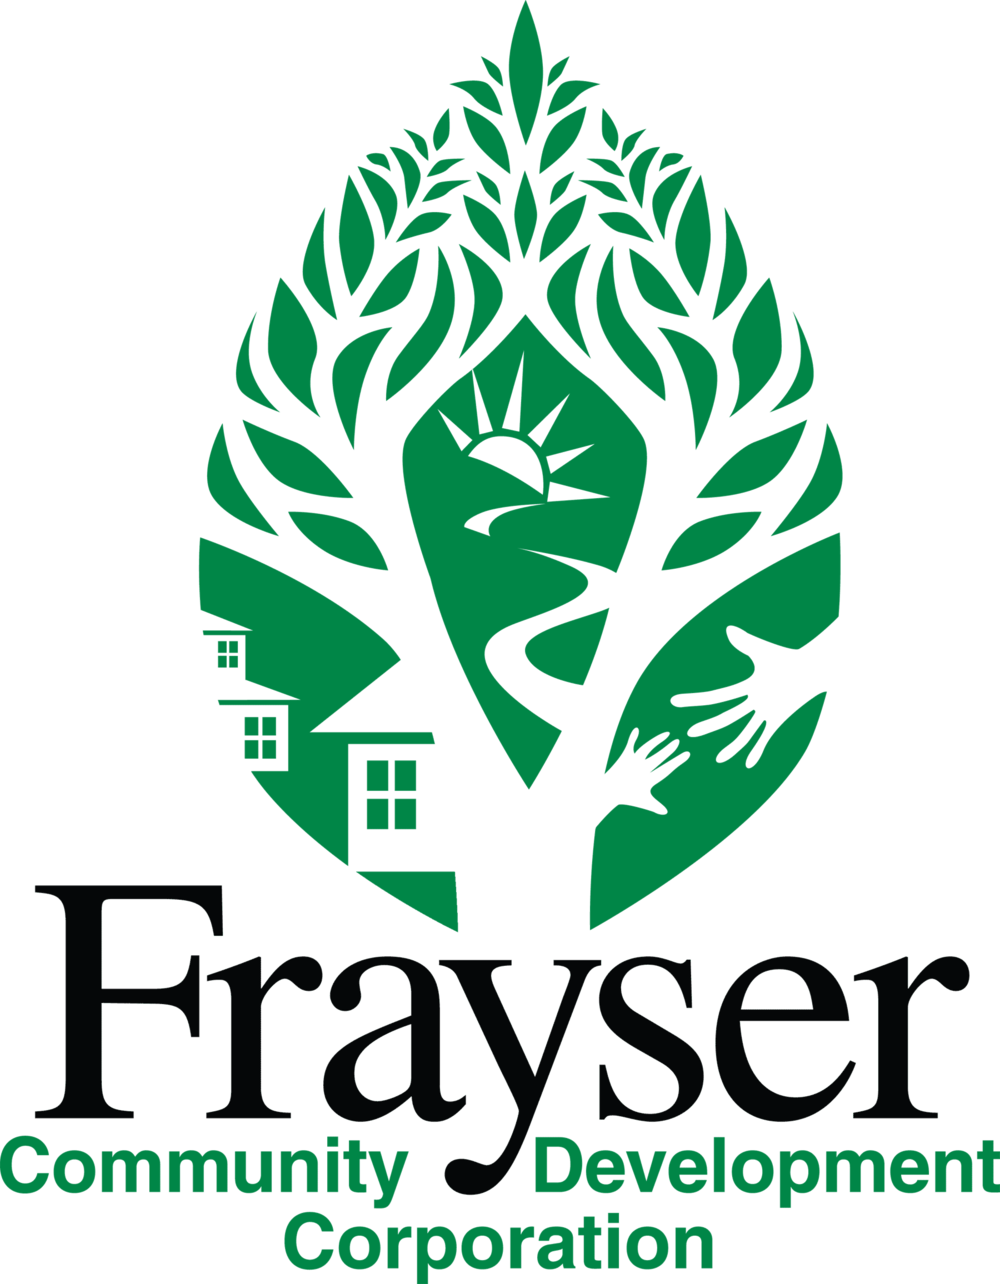 Frayser Community Development Corporation